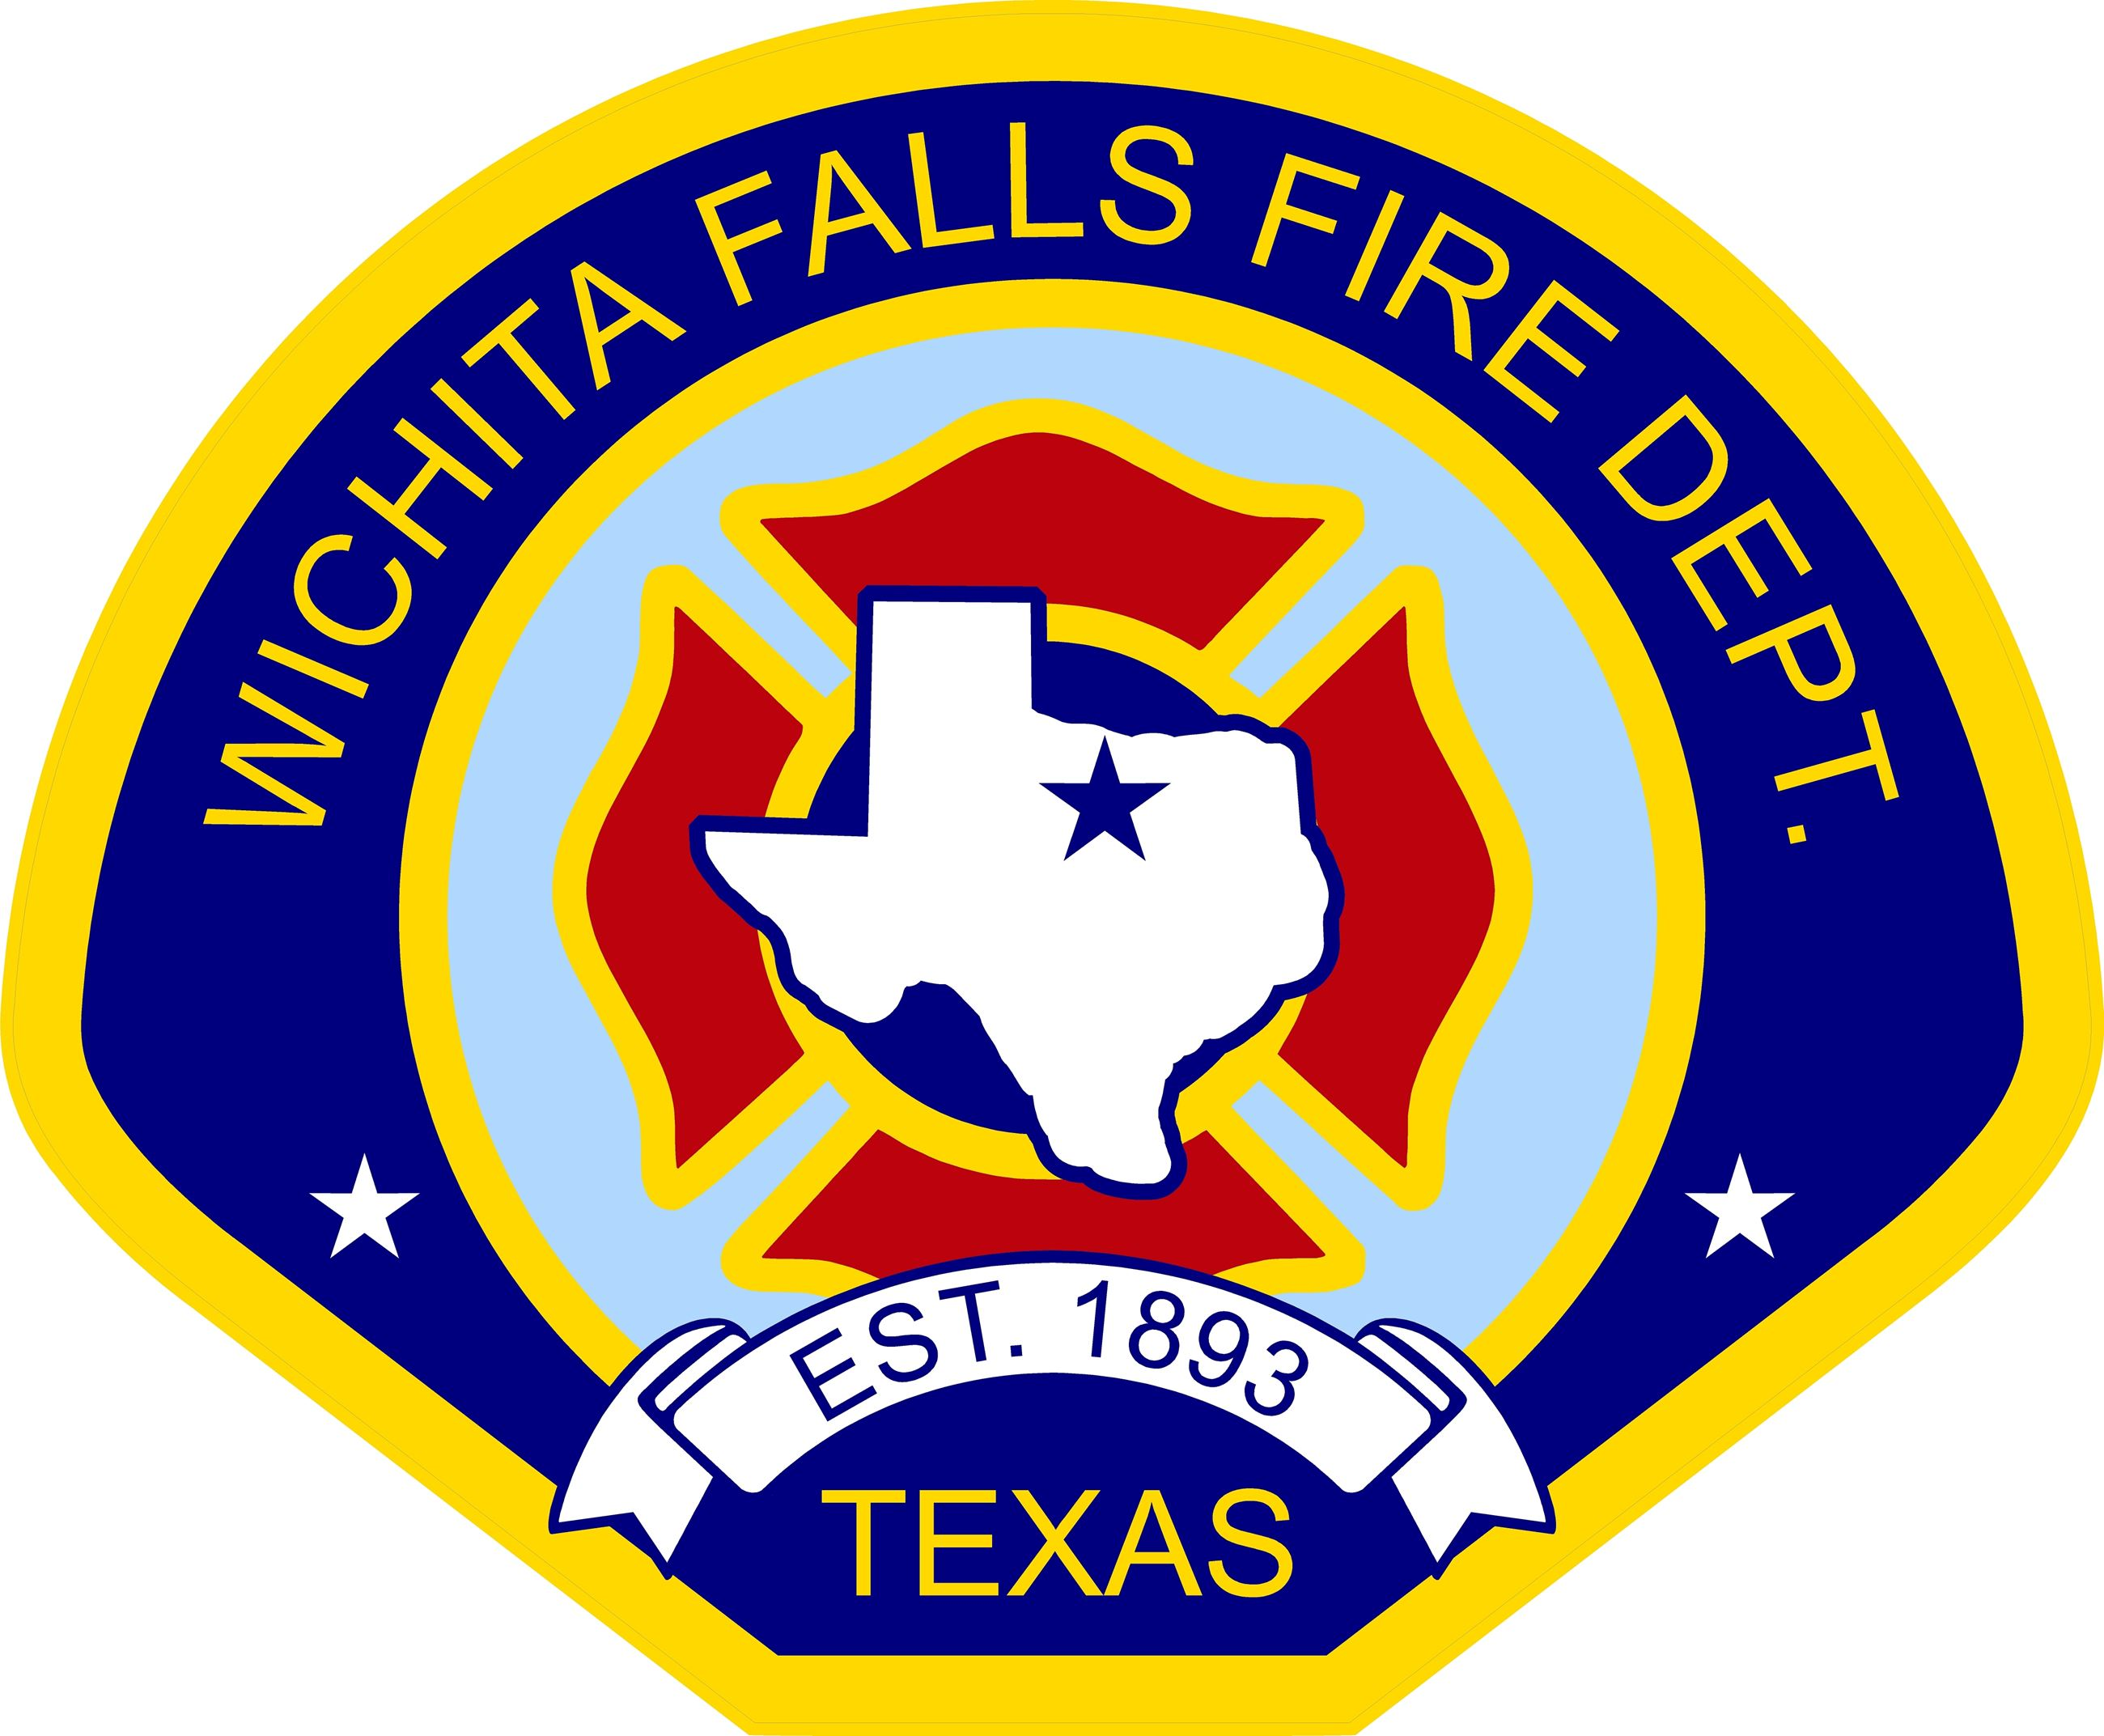 WICHITA FALLS FIRE DEPARTMENT DECALS